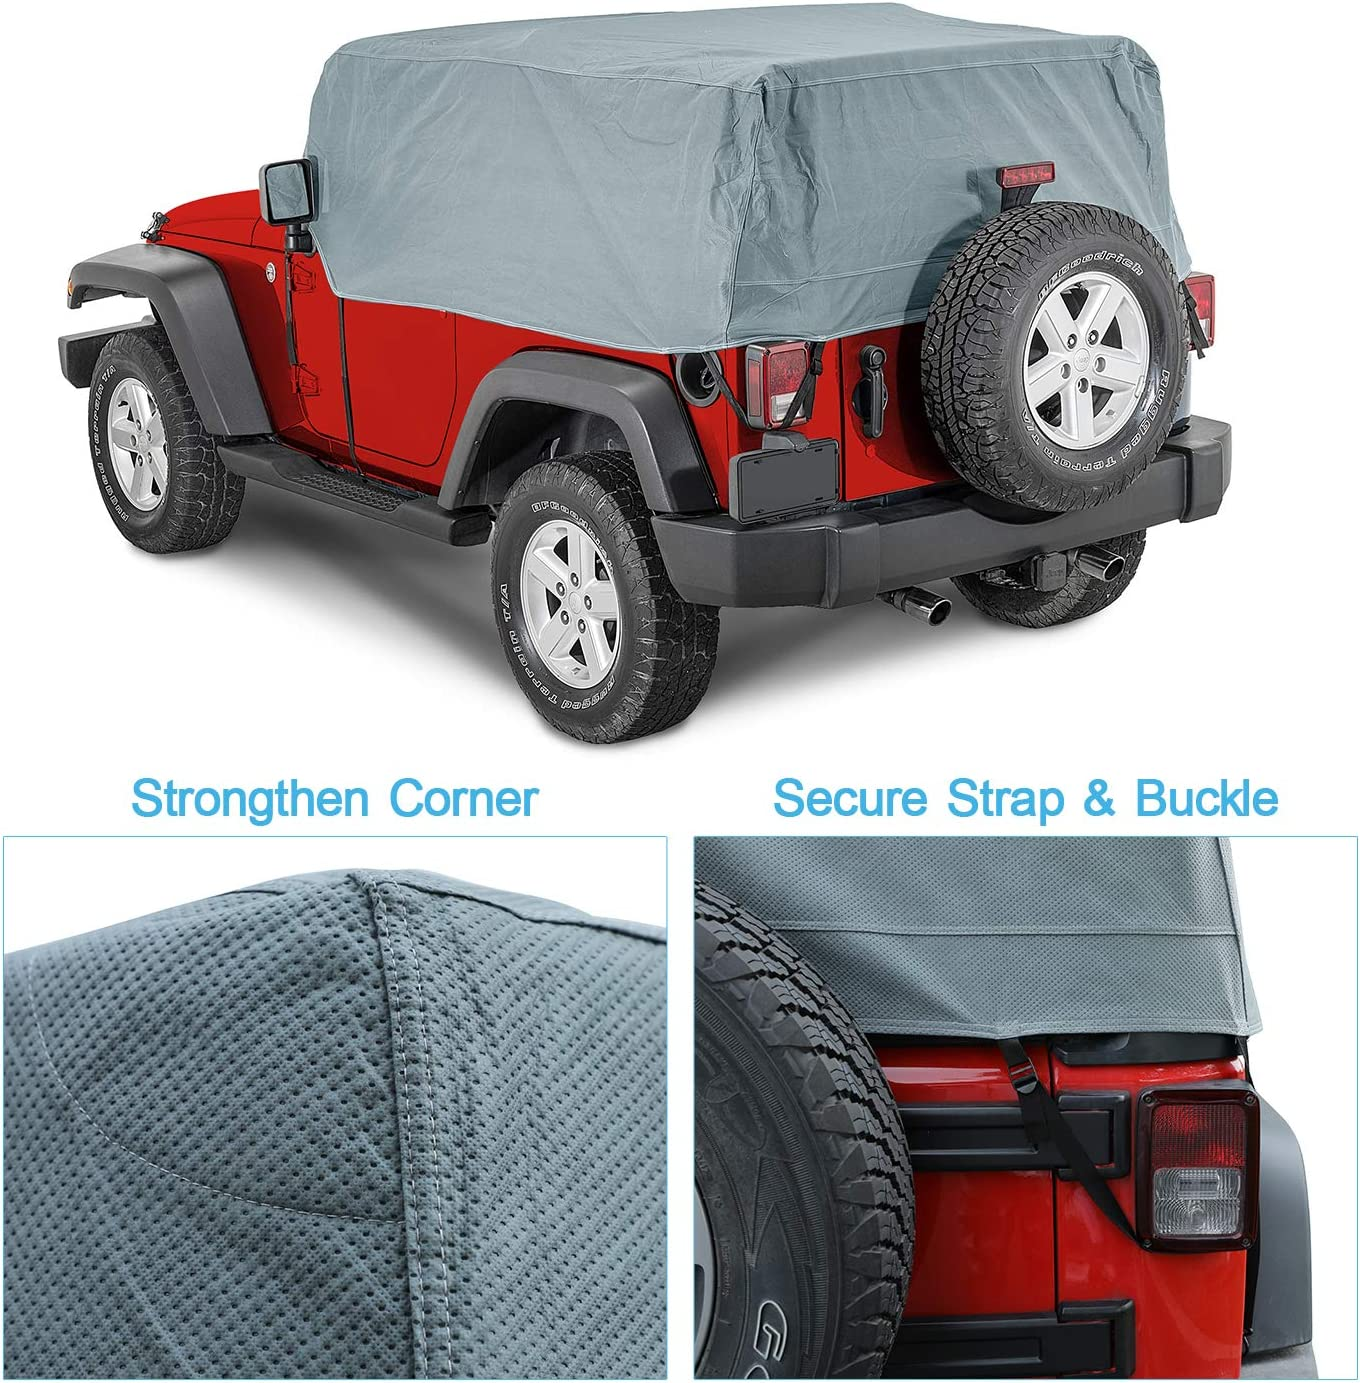 100/% UV Protection Breathable SUV Car Cover Fit 2007-2018 Models OOFIT 5 Layers Jeep Cab Cover Jeep Wrangler Unlimited 2 Door Car Cover Windproof Dustproof Scratch Proof